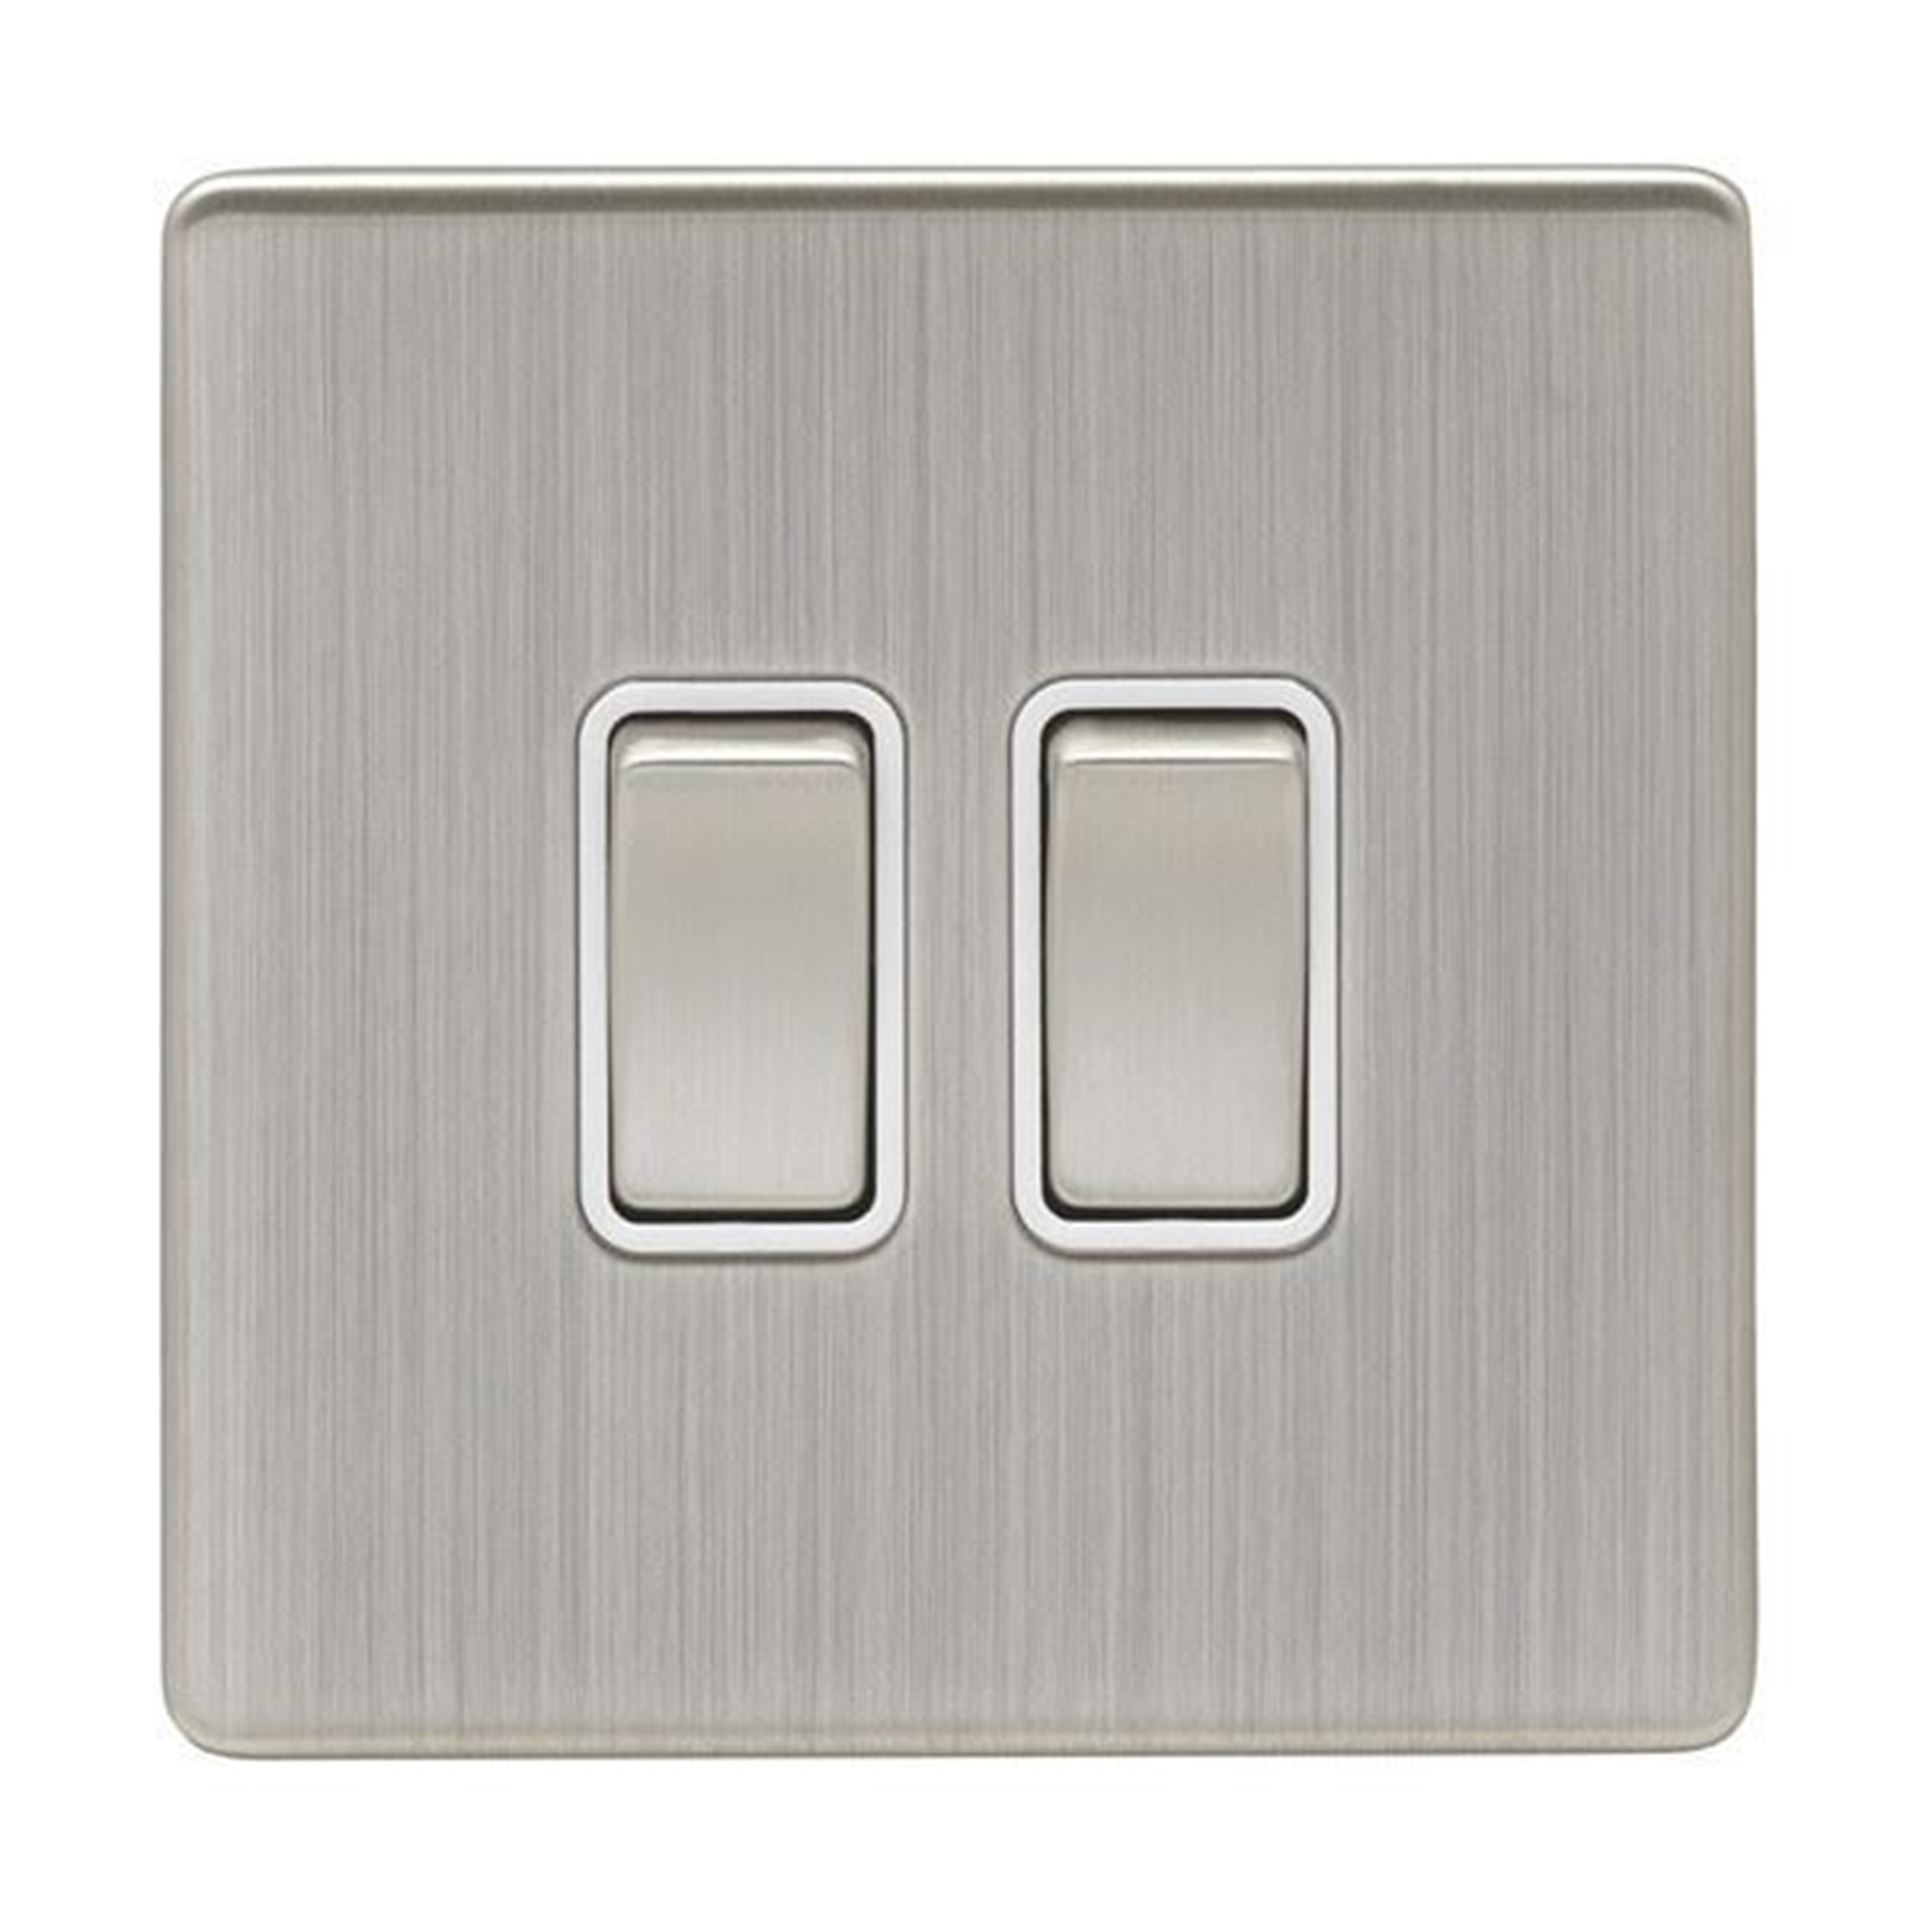 Eurolite 2 Gang 10Amp 2Way Switch Concealed Satin Nickel Plate Matching Rockers White Trim ECSN2SW SNW